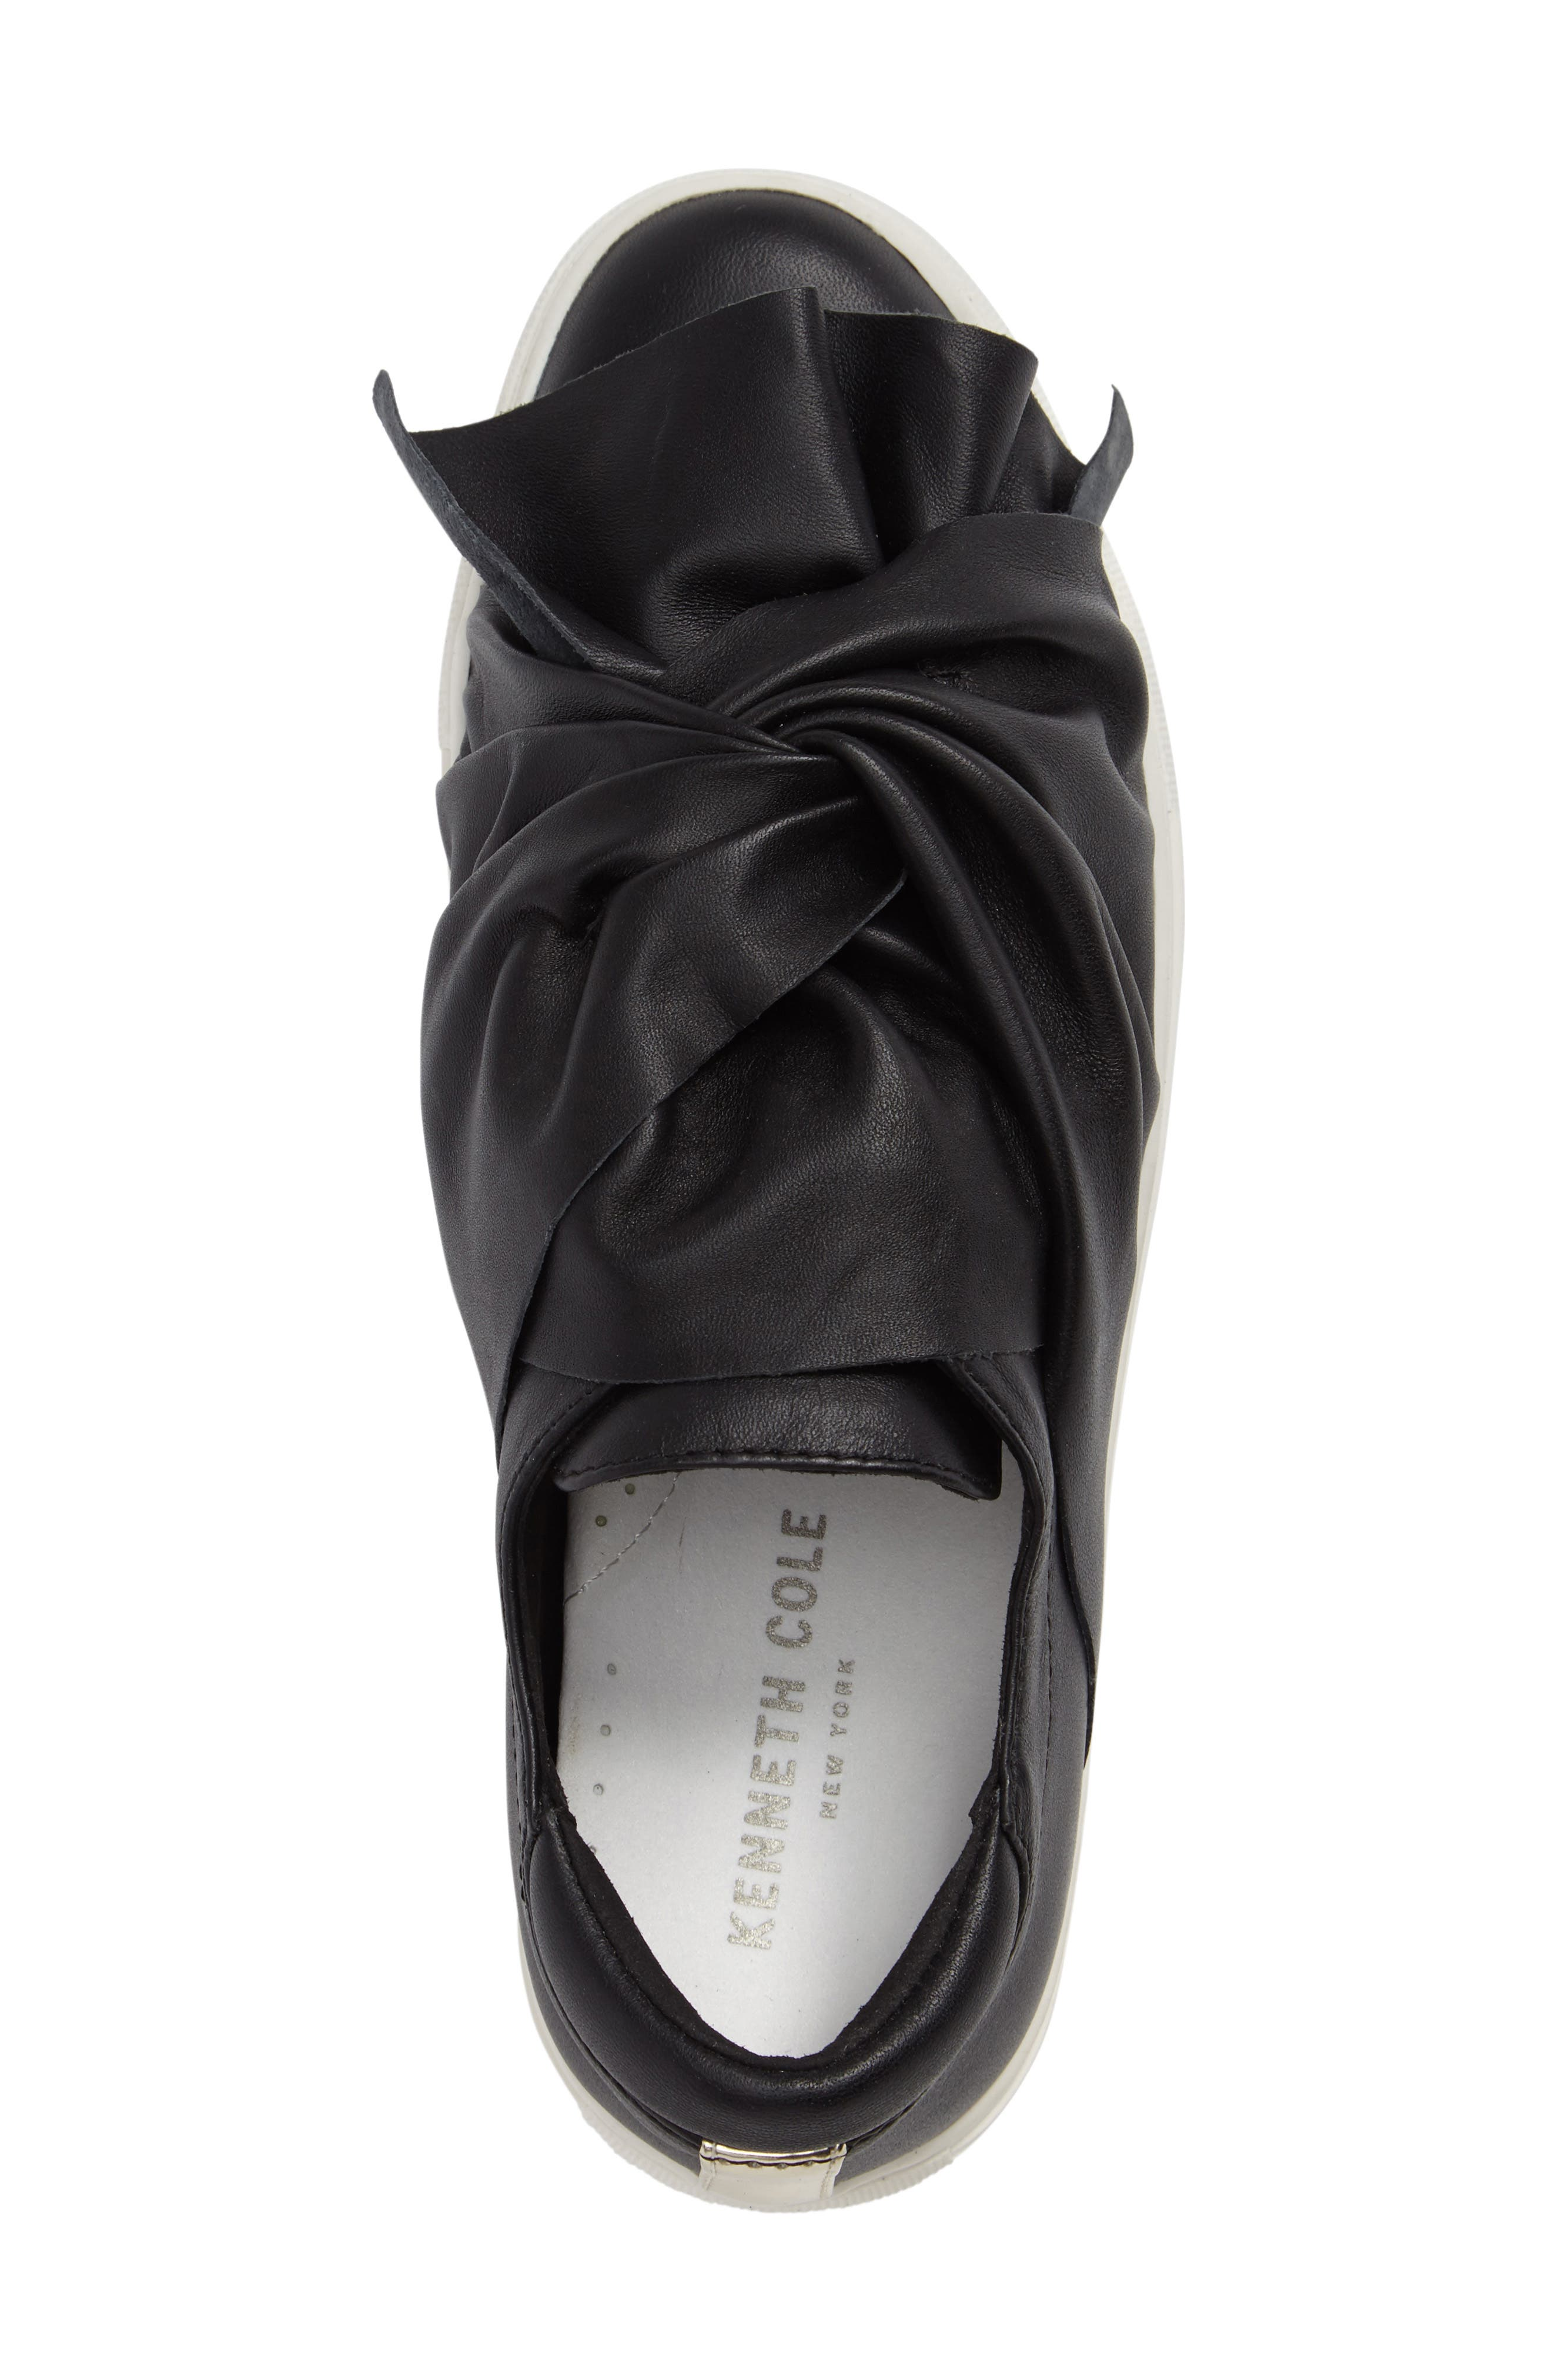 KENNETH COLE NEW YORK, Kenneth Cole Aaron Twisted Knot Flatform Sneaker, Alternate thumbnail 3, color, 001